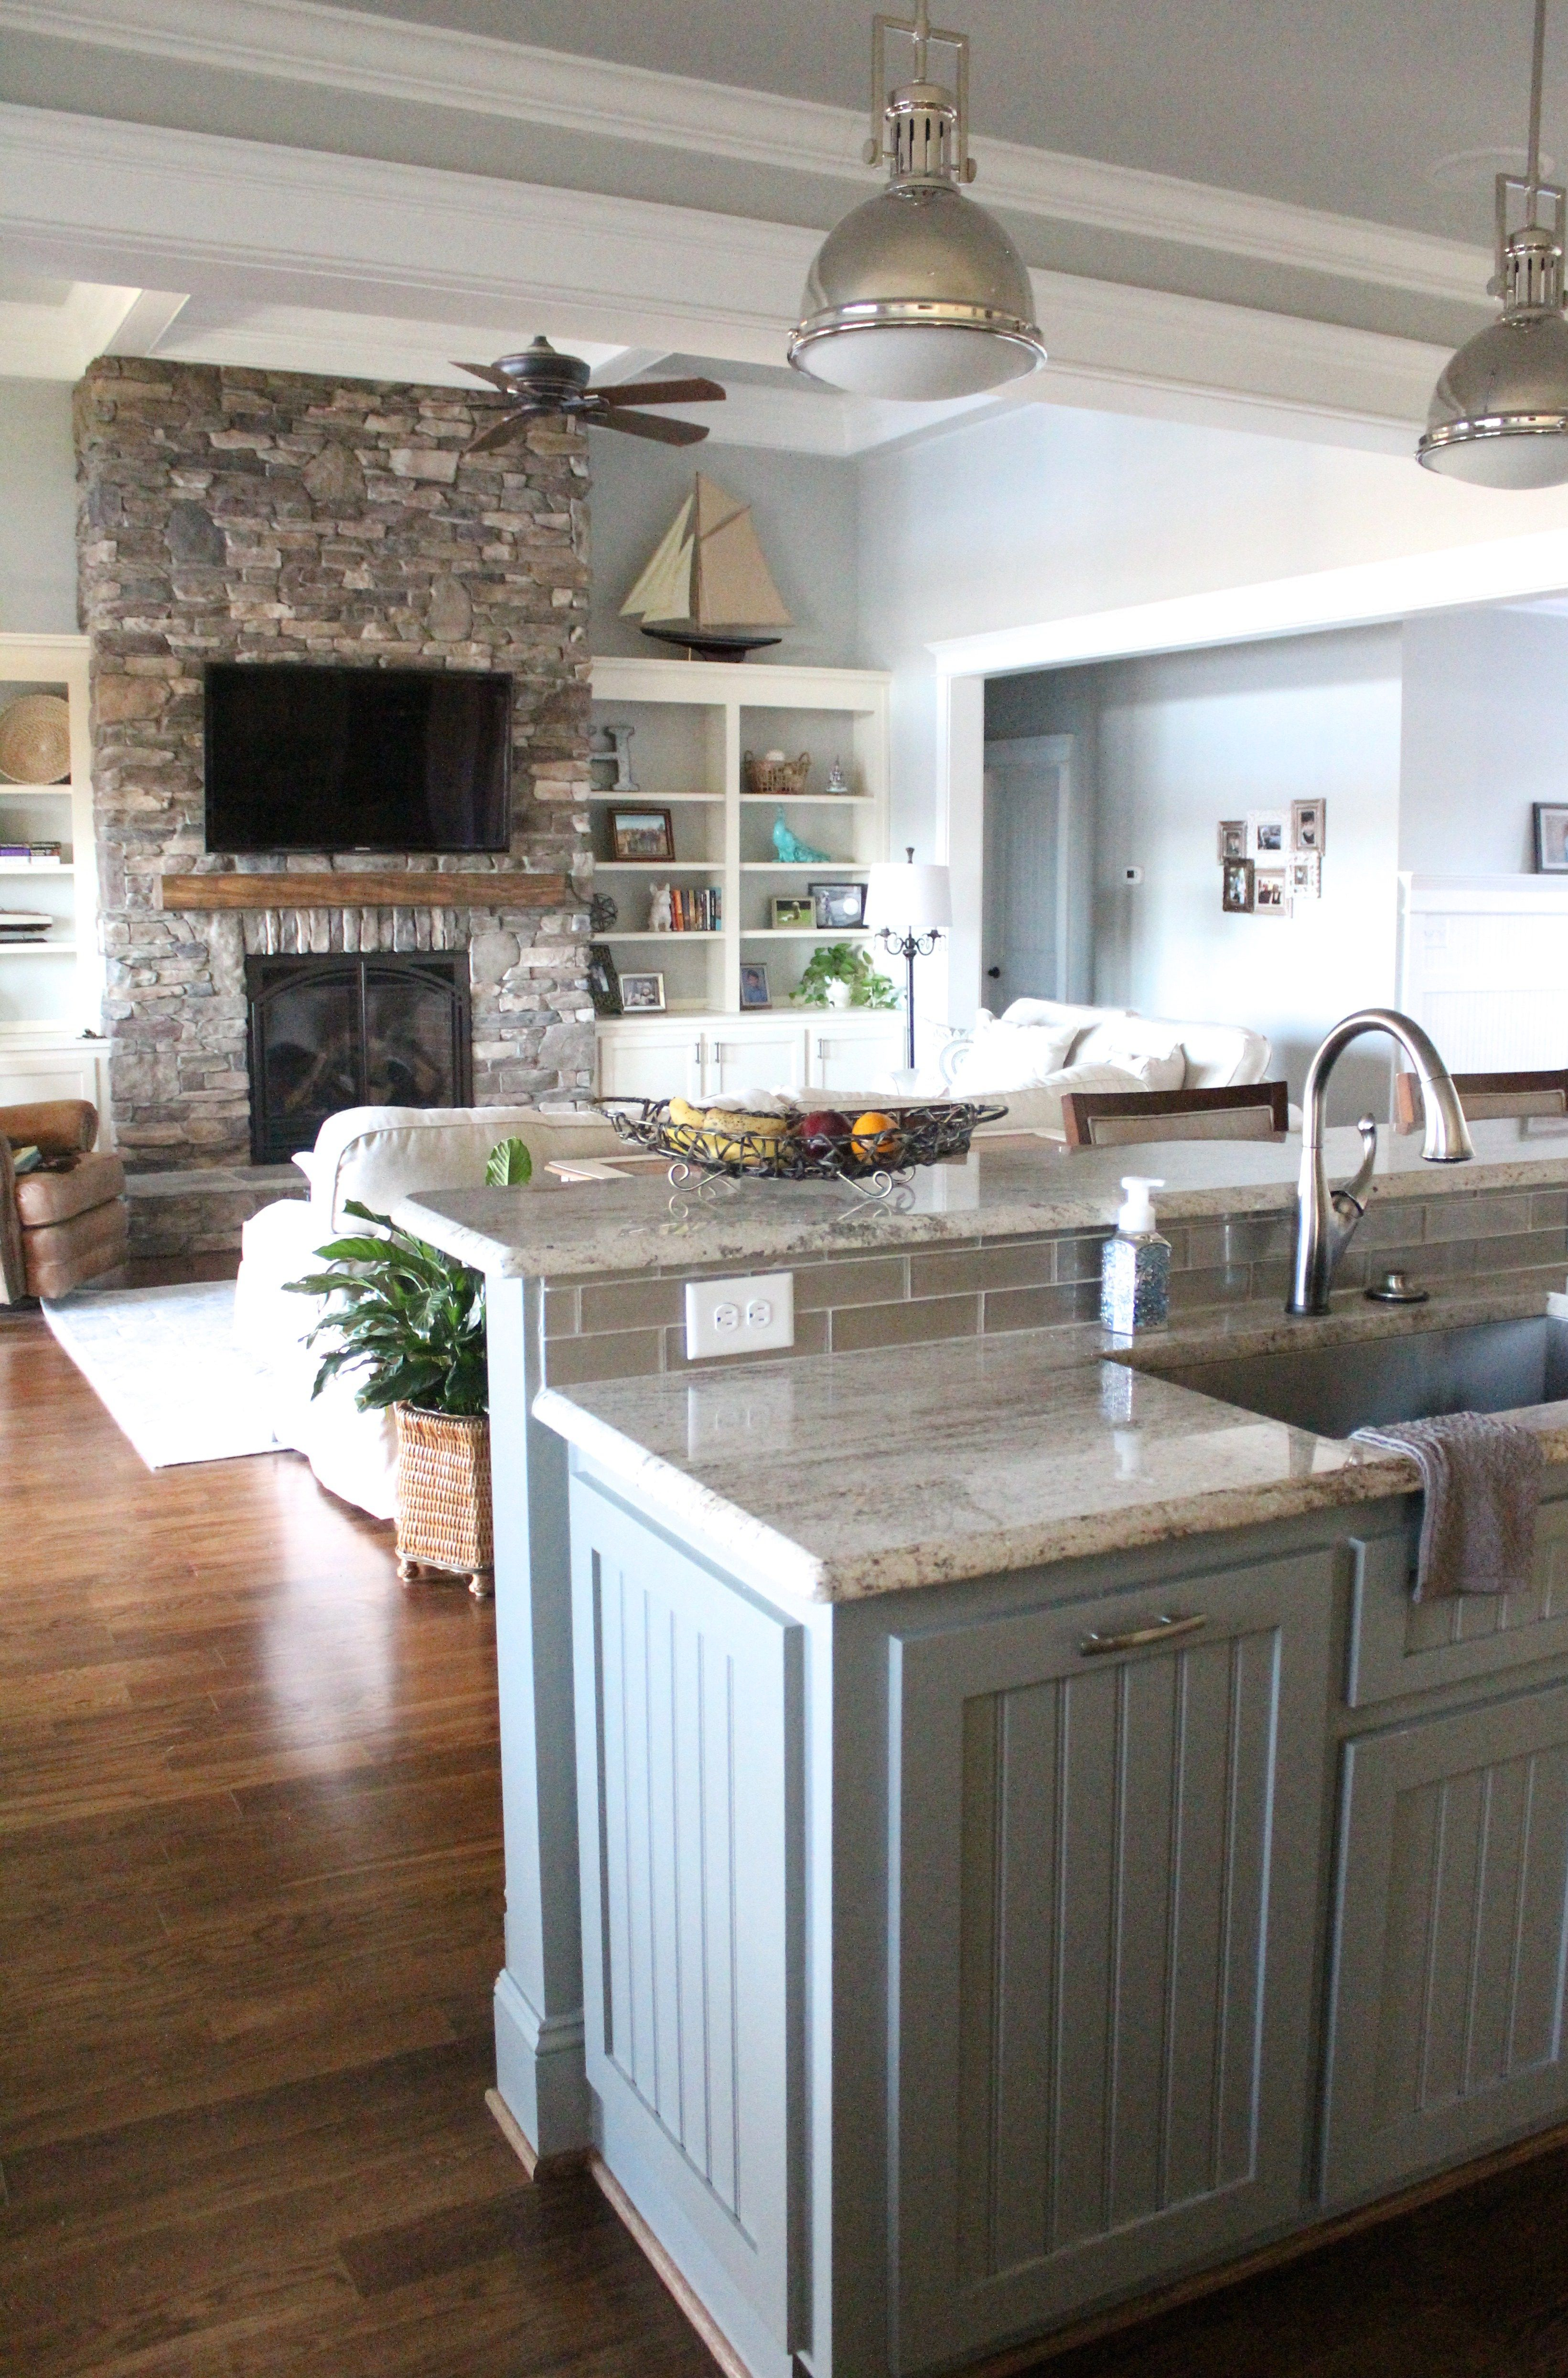 Home Of The Month Lake House Reveal Go To Site For Lots Pictures This Is Beautiful